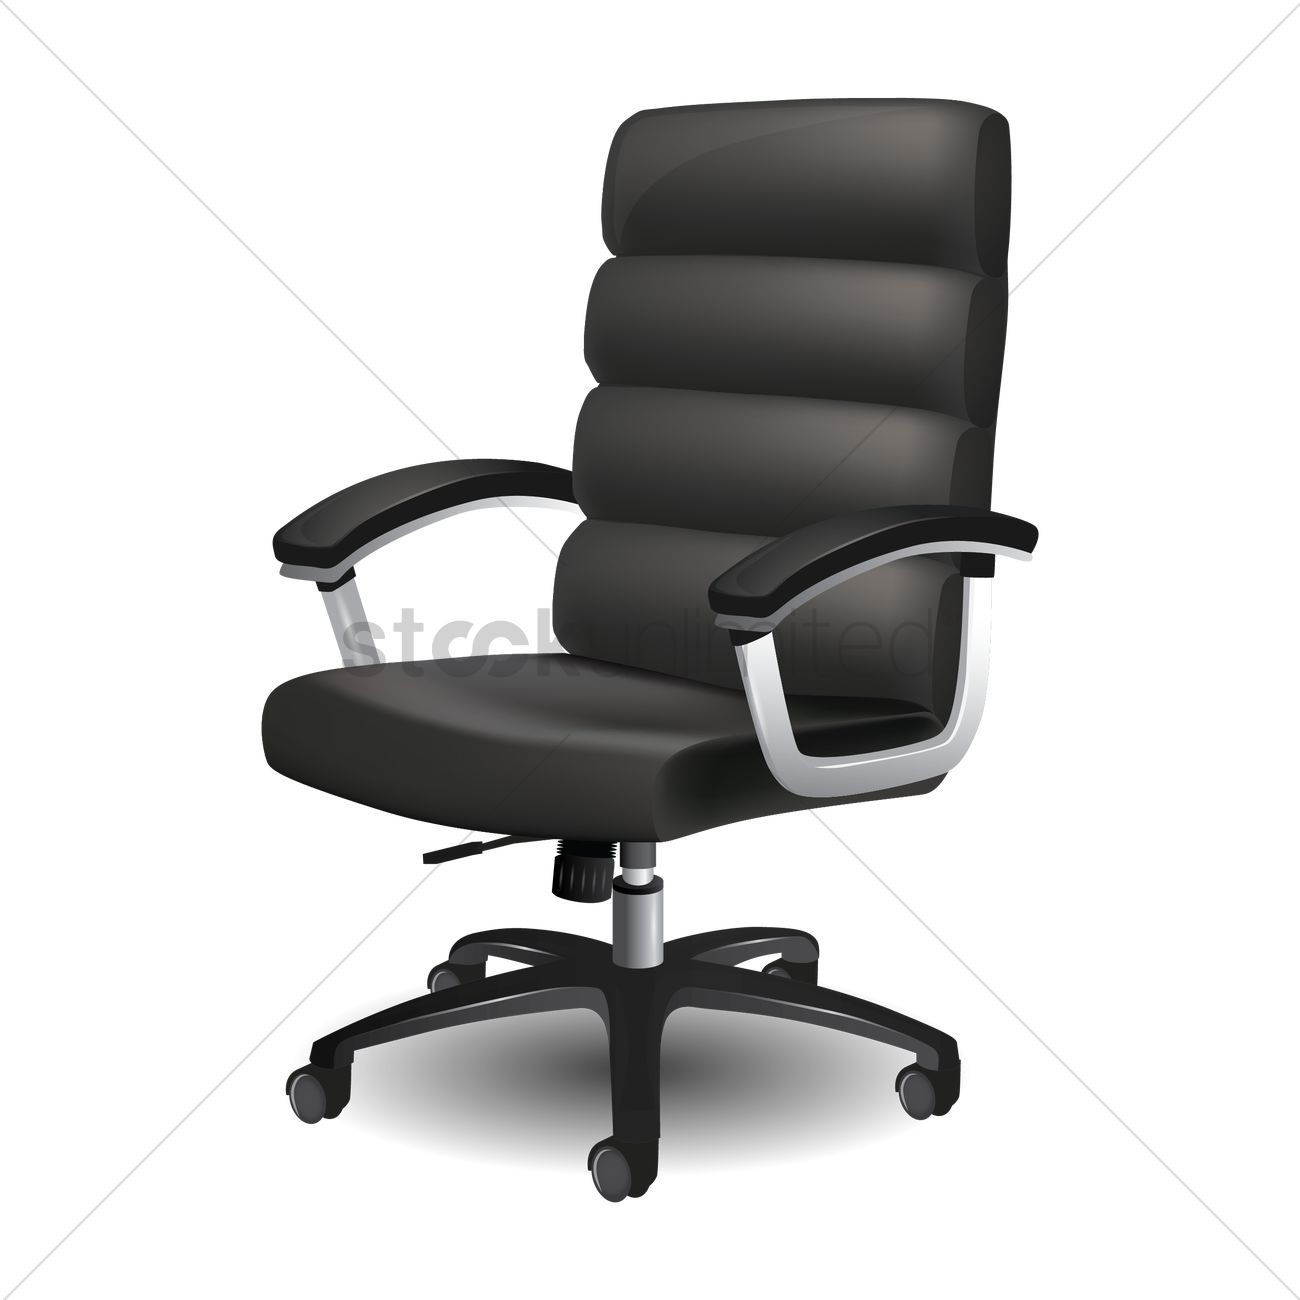 office chair vector blue bay rum cream calories image 1529007 stockunlimited graphic